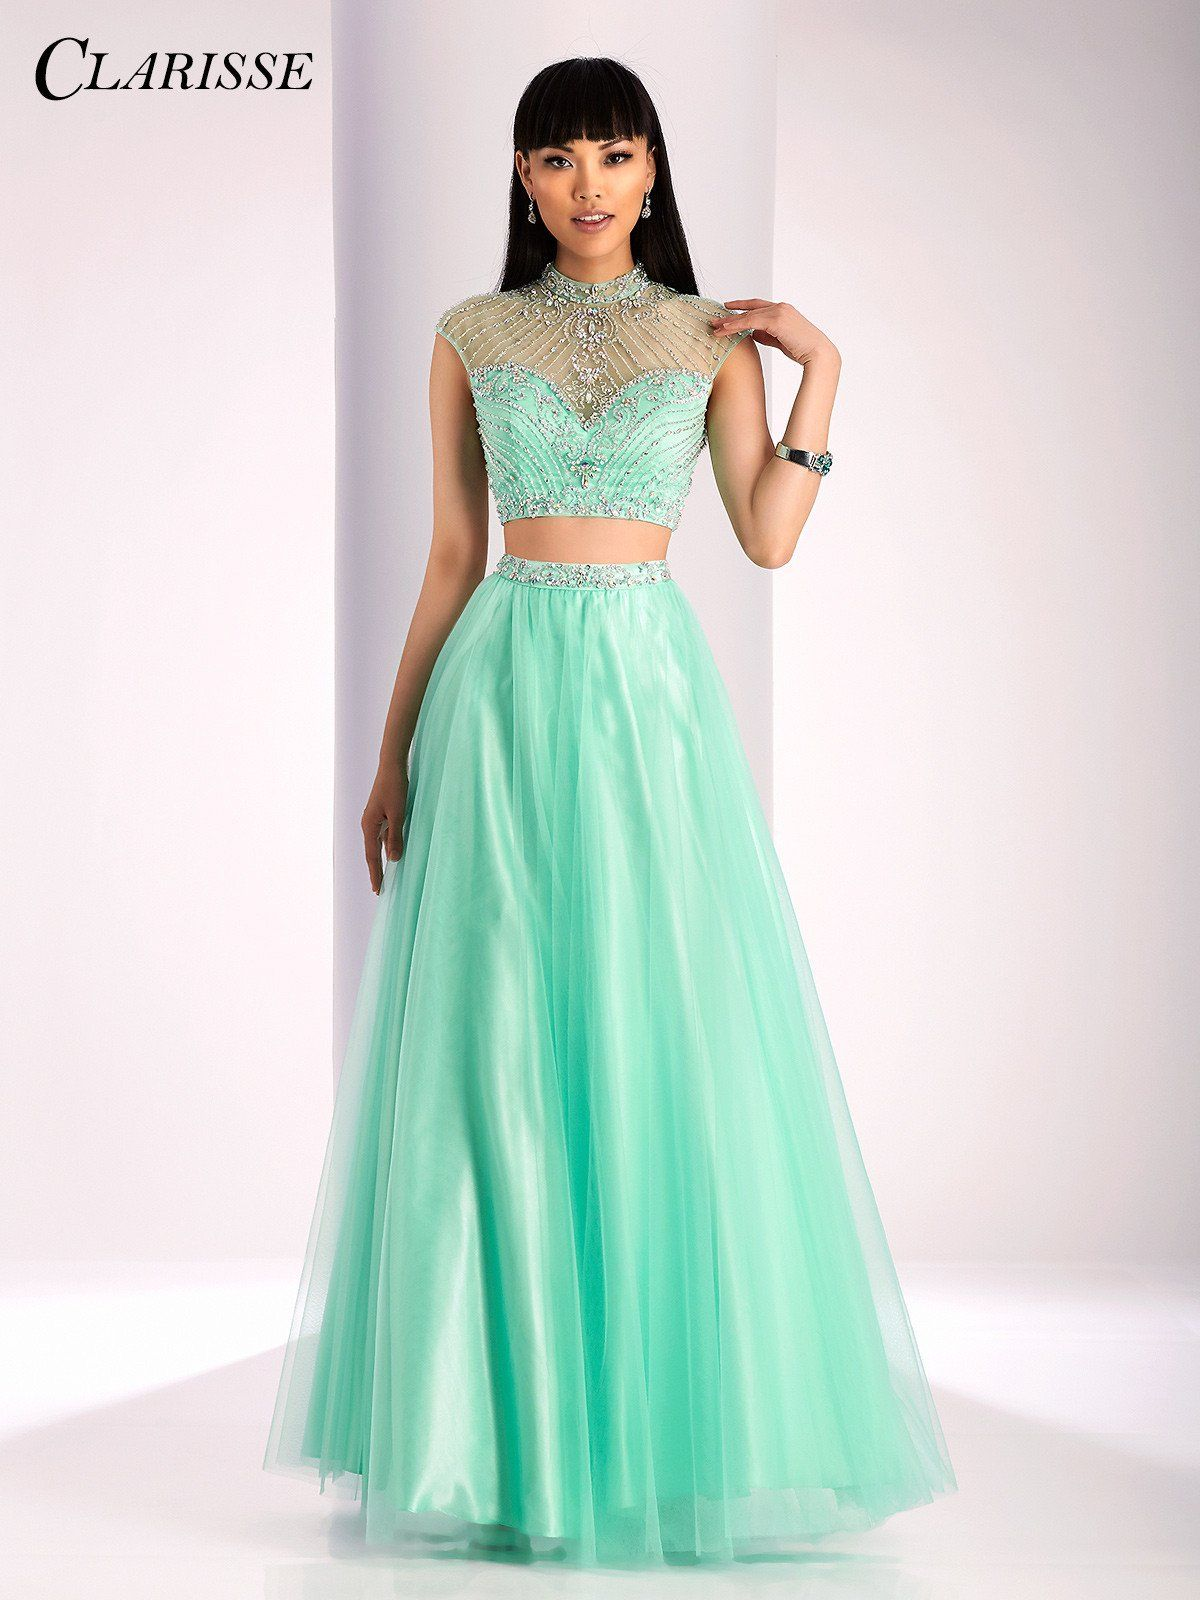 Clarisse prom mint high neckline twopiece prom dress